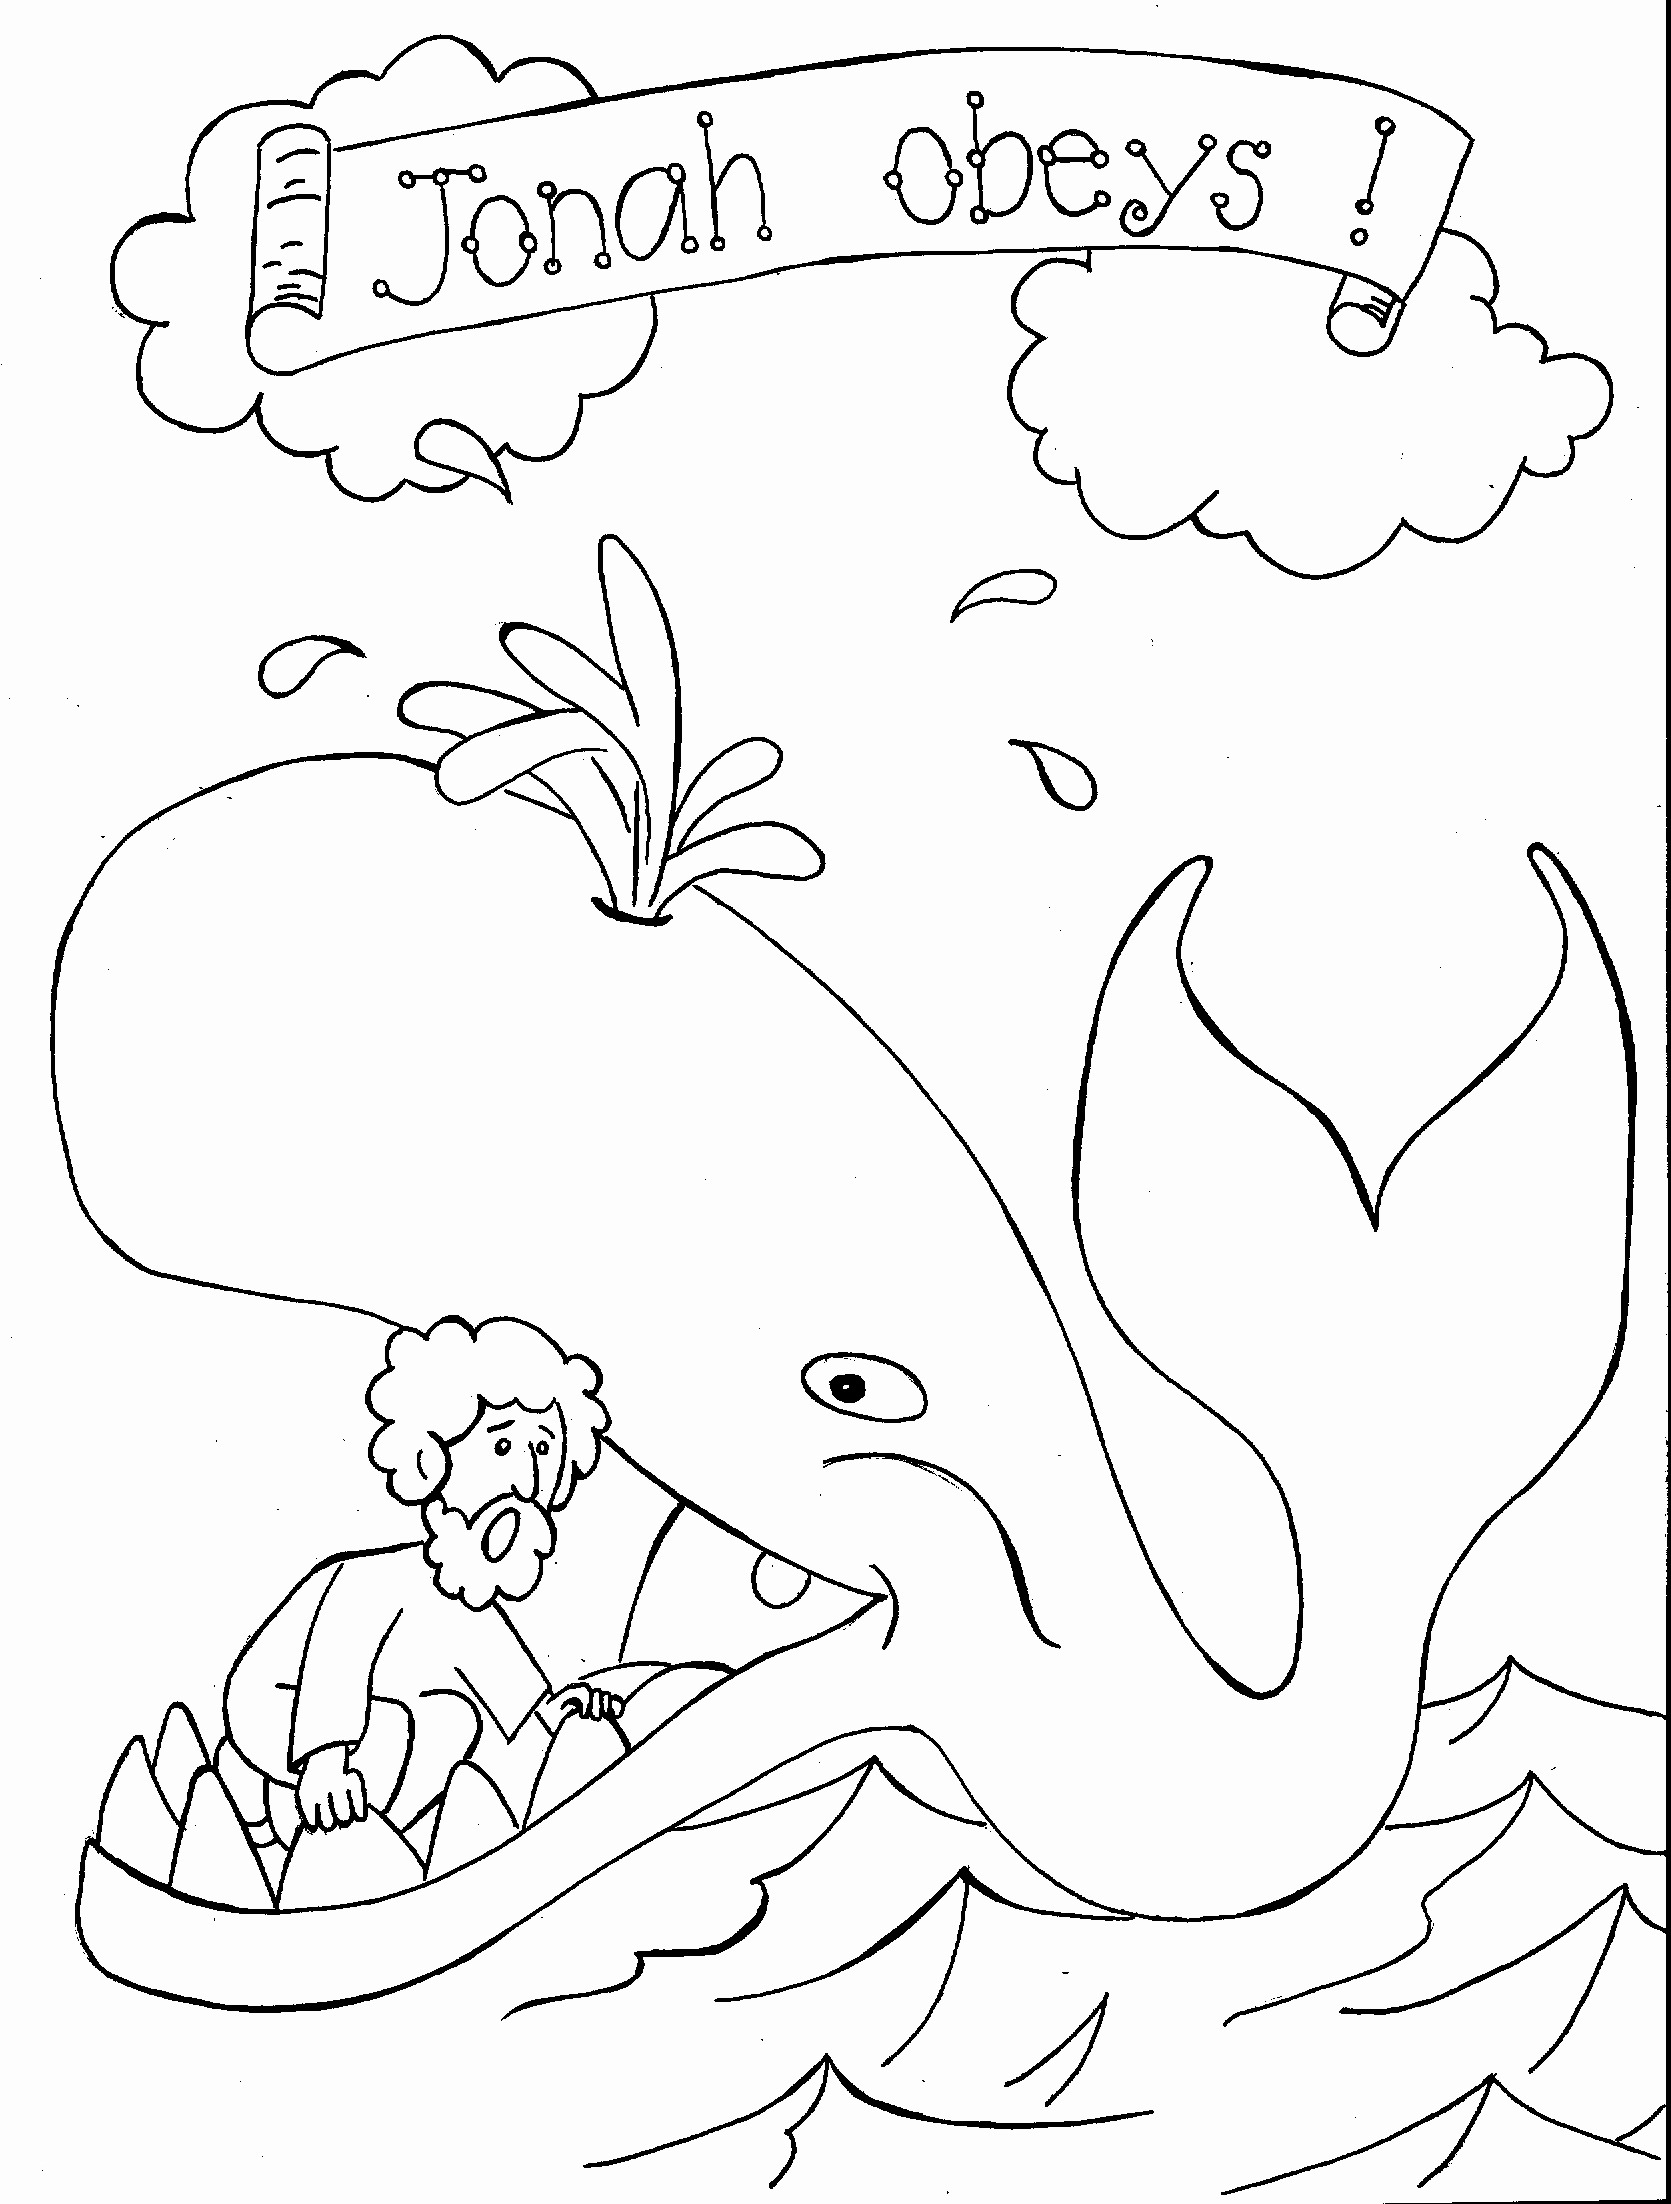 christian coloring pages with scripture Collection-Bible Story Coloring Books Beautiful Bible Coloring Pages For Adults Best Best Od Dog Coloring Pages Bible Story Coloring Books Amazing Bible Story 16-a